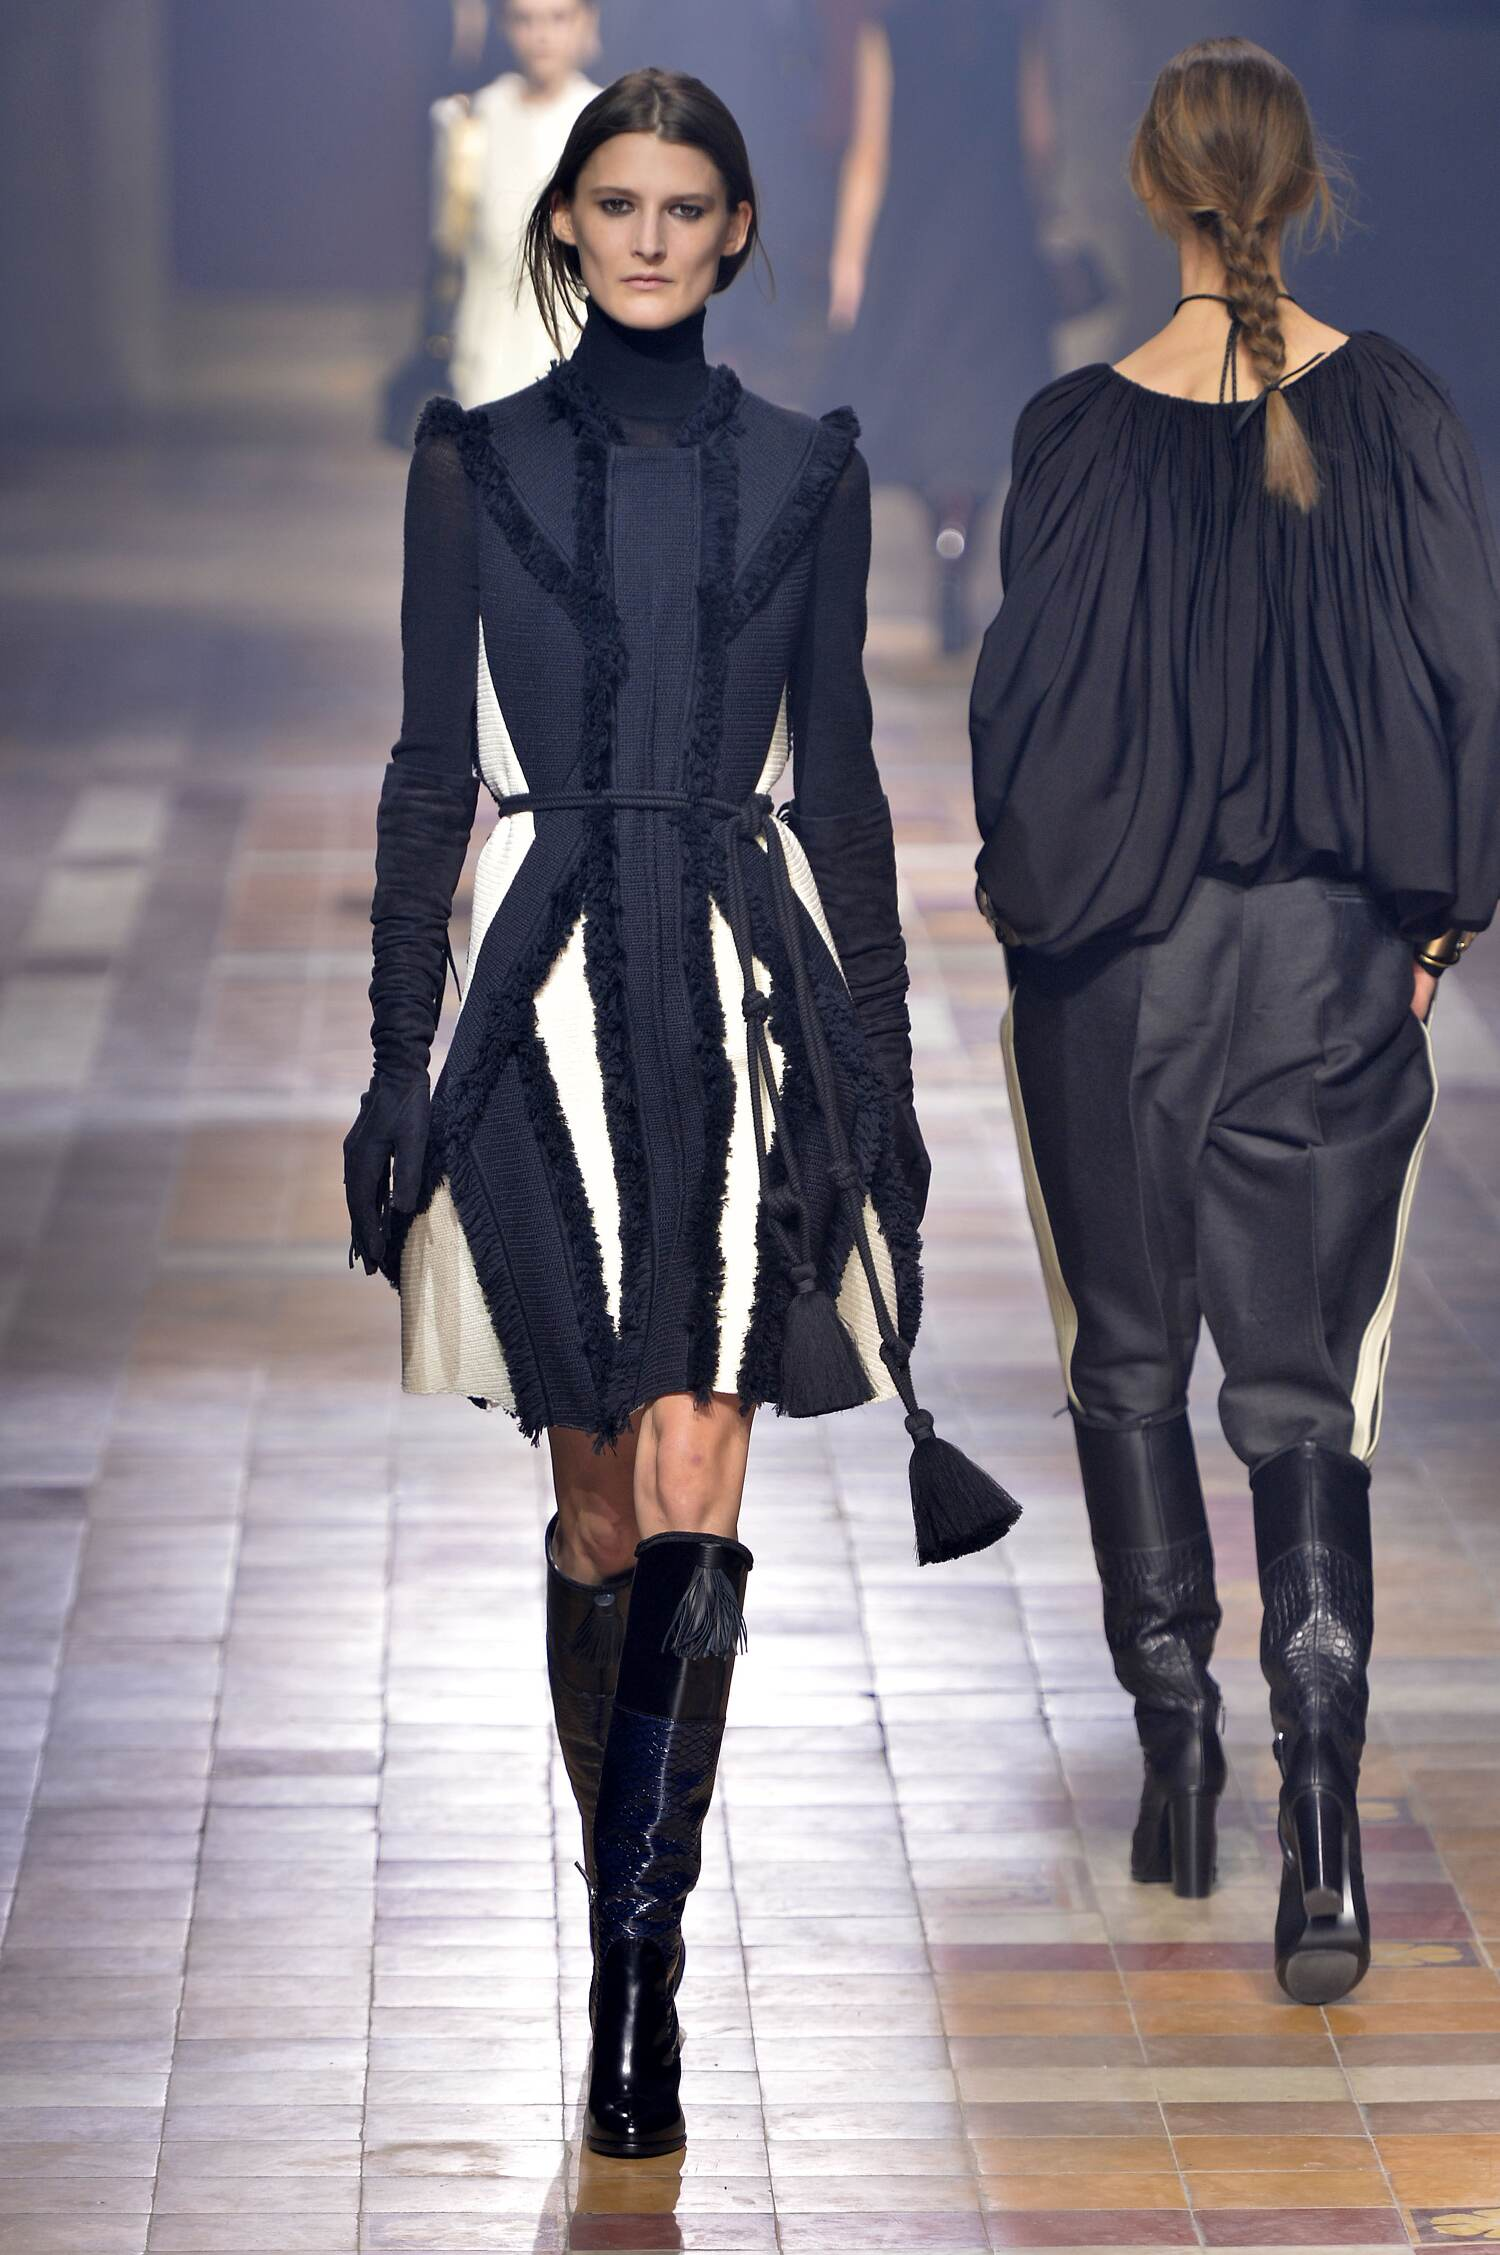 2015 Fashion Woman Model Lanvin Collection Catwalk